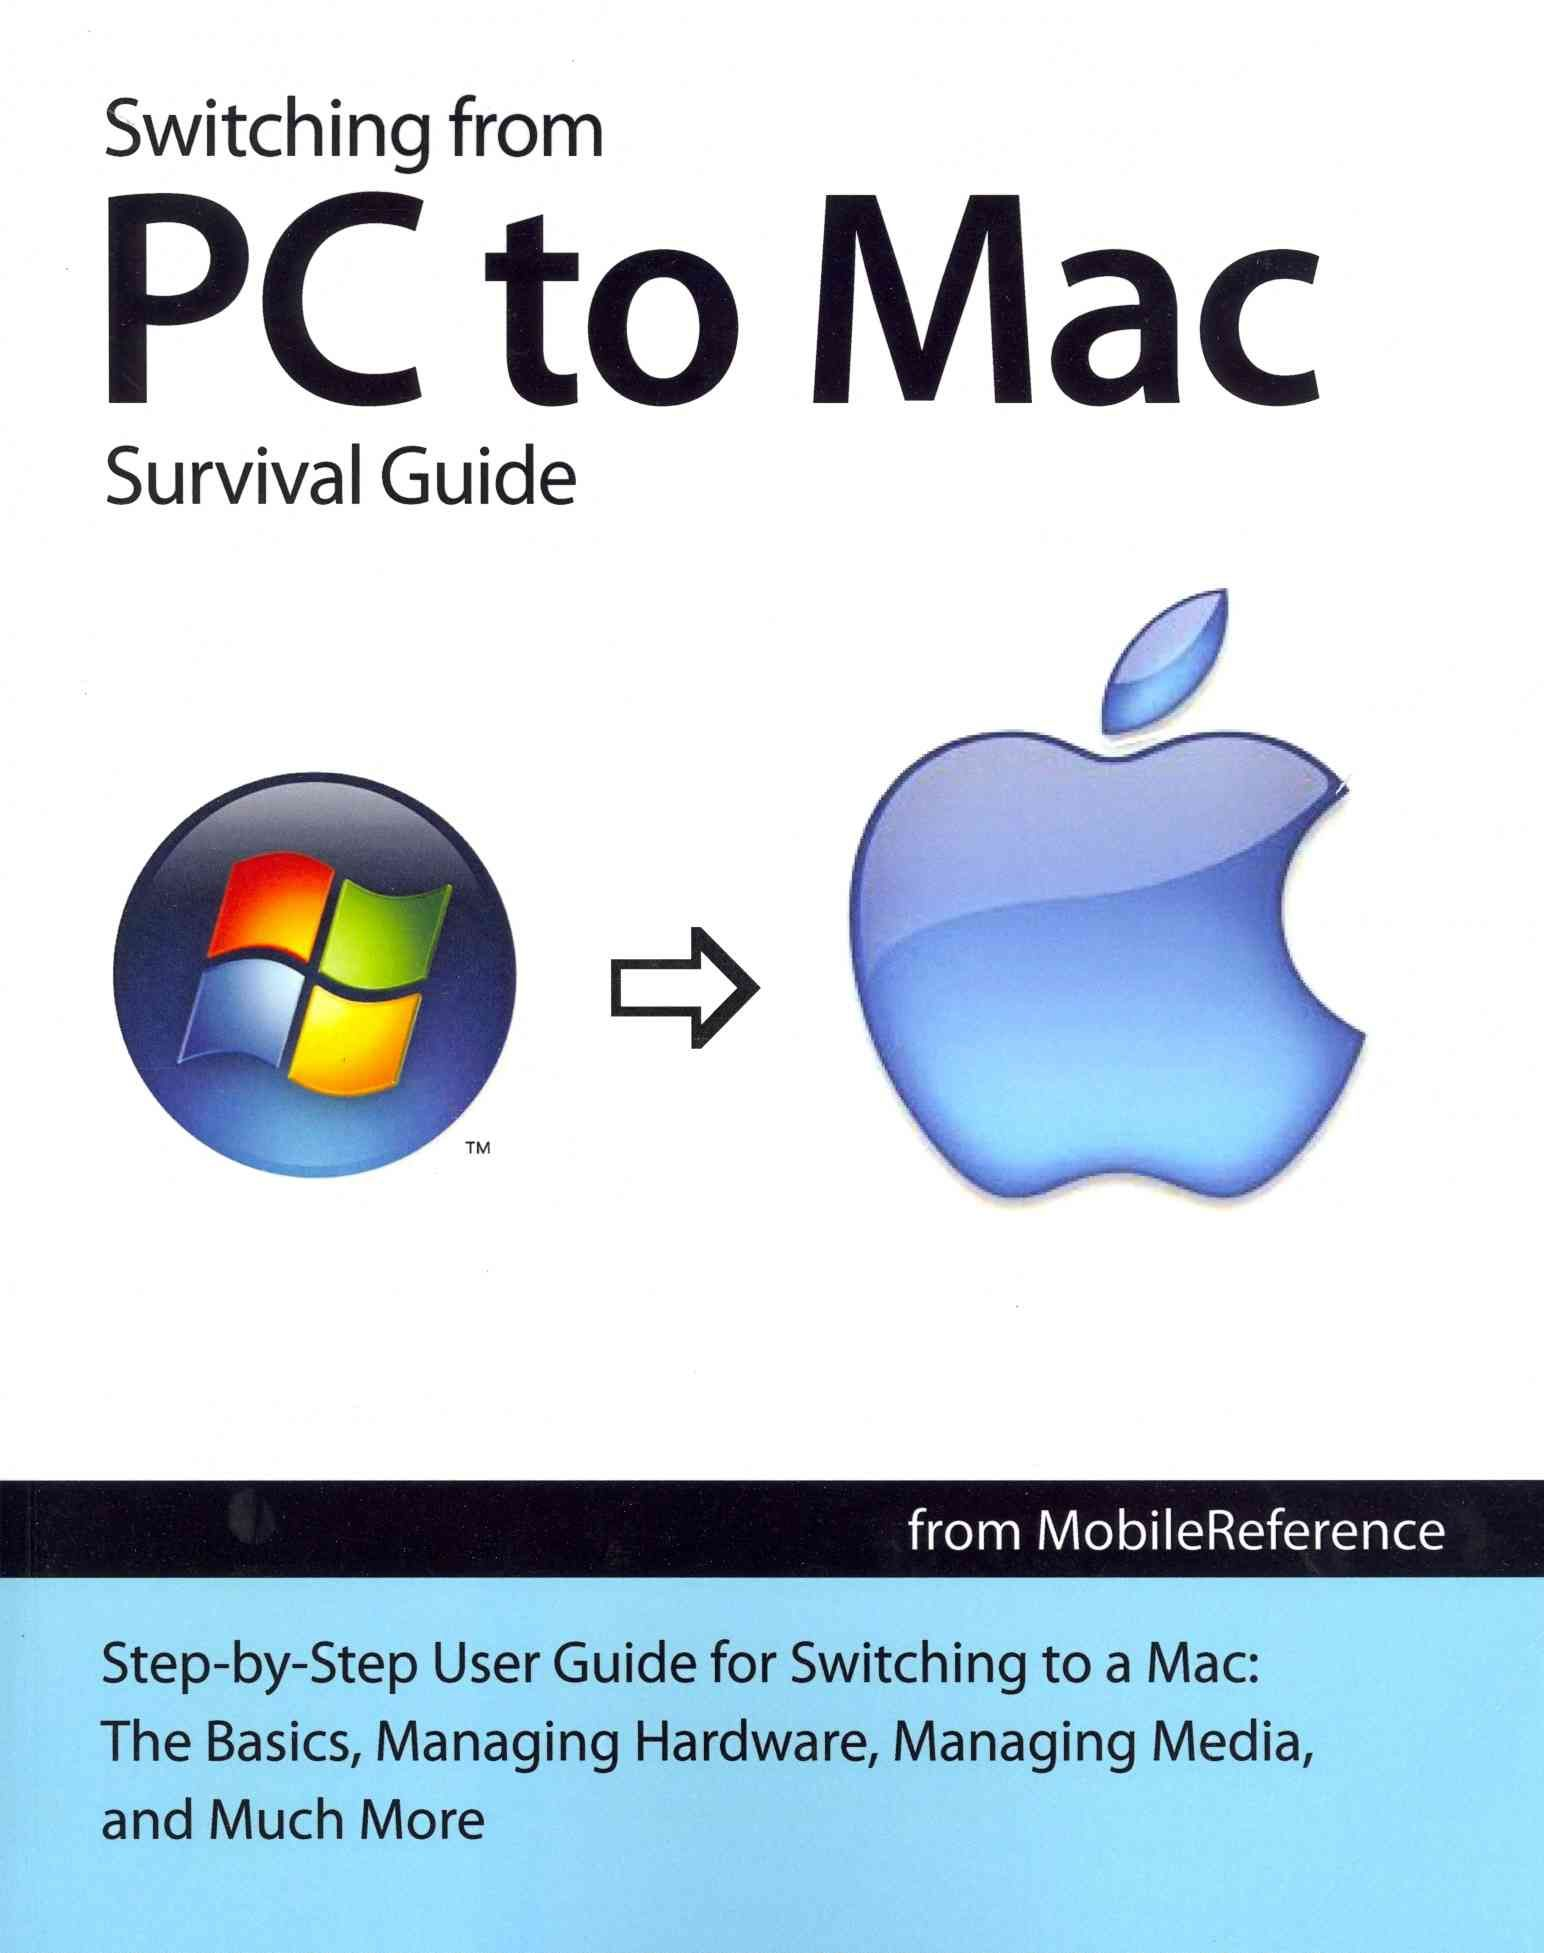 switching from pc to mac survival guide step by step user guide for rh pinterest com Mac Desktop Mac Desktop Computer